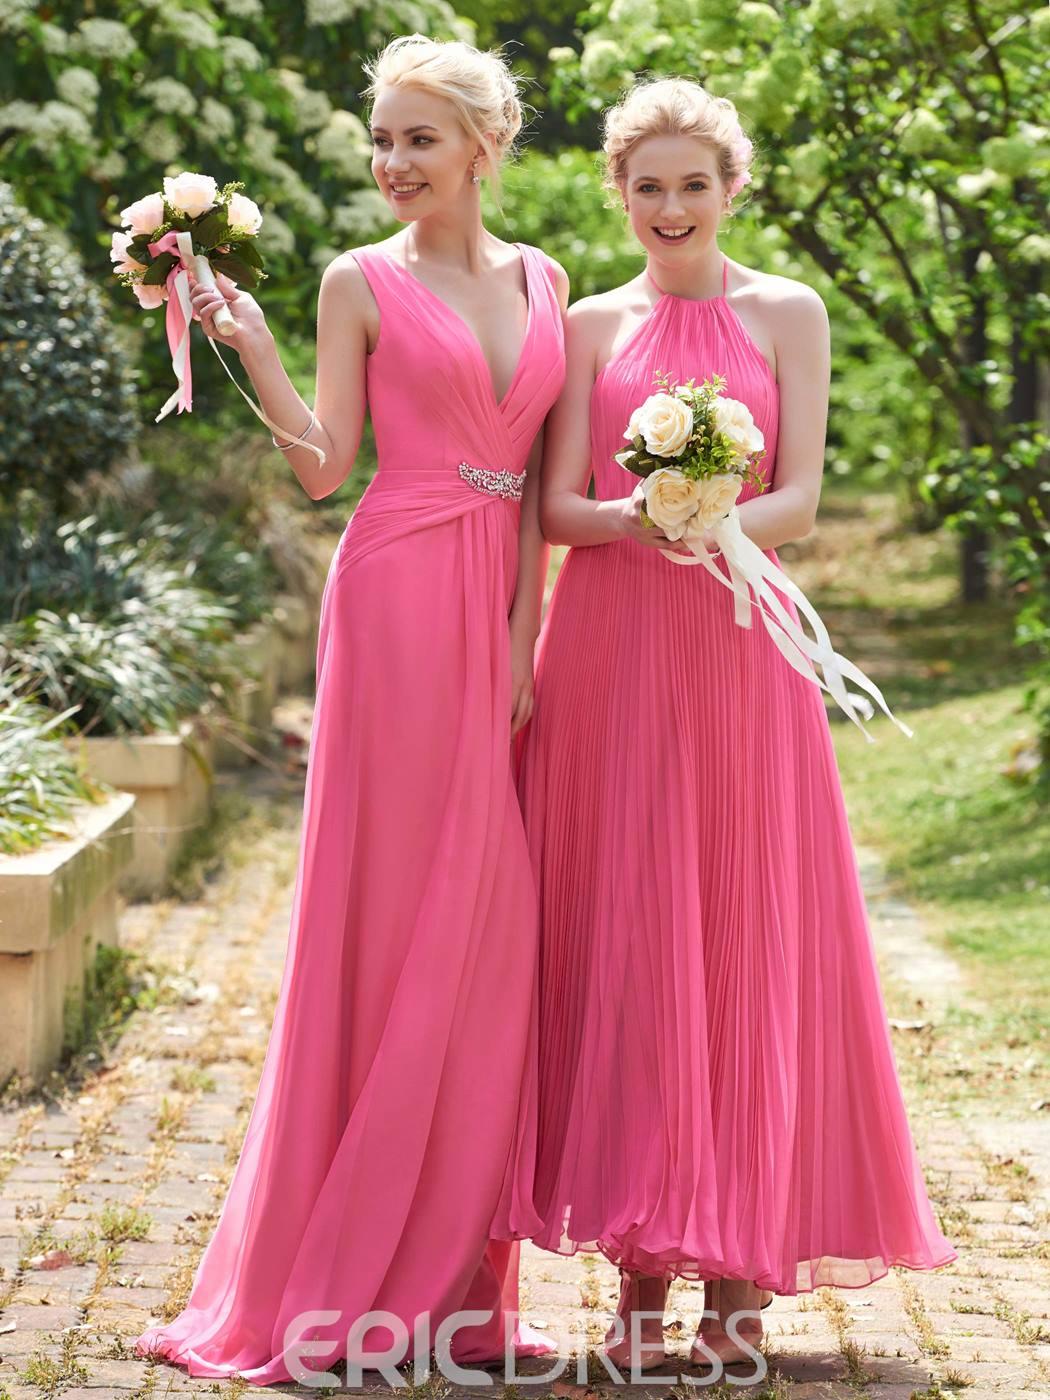 Ericdress Beautiful Halter A Line Ankle Length Bridesmaid Dress